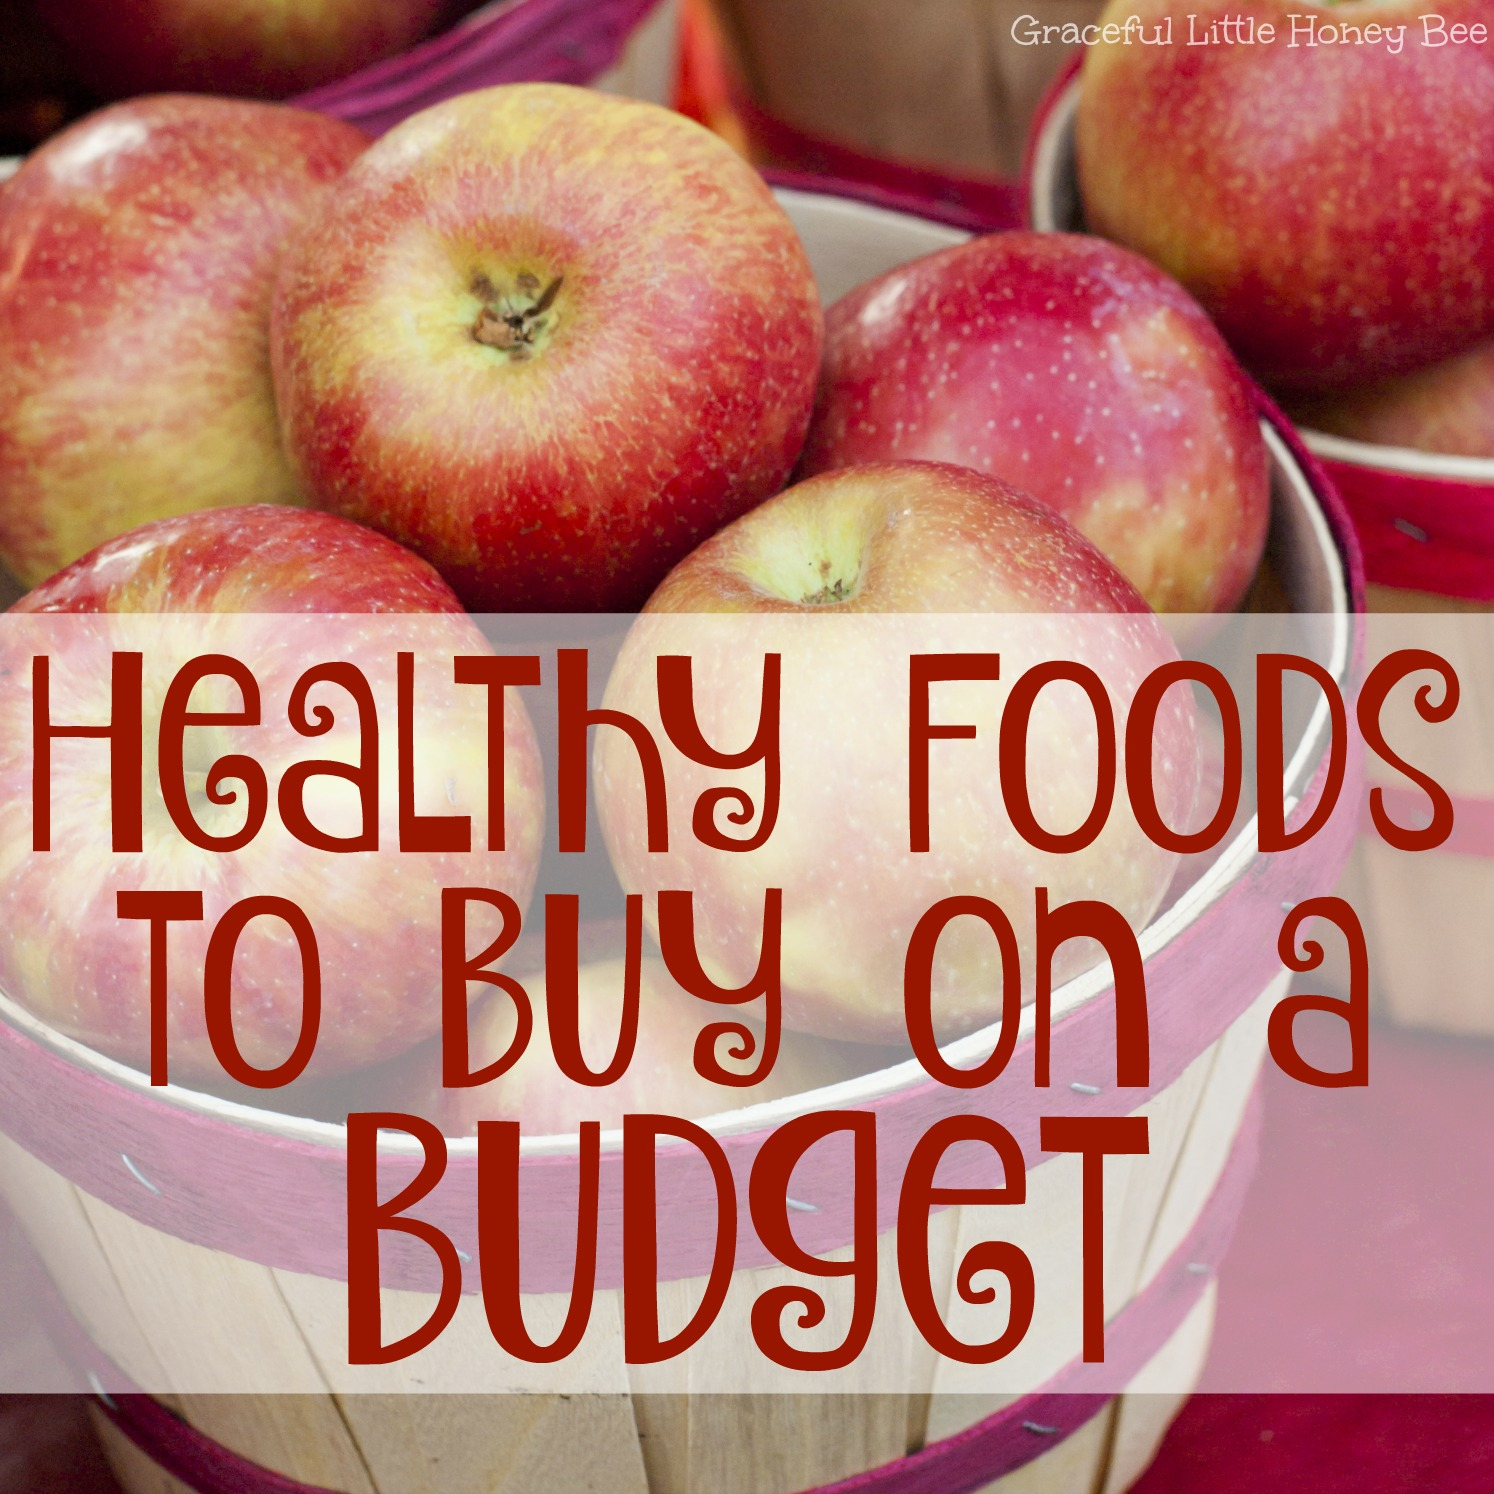 Buy Food Healthy Foods To Buy On A Budget Graceful Little Honey Bee